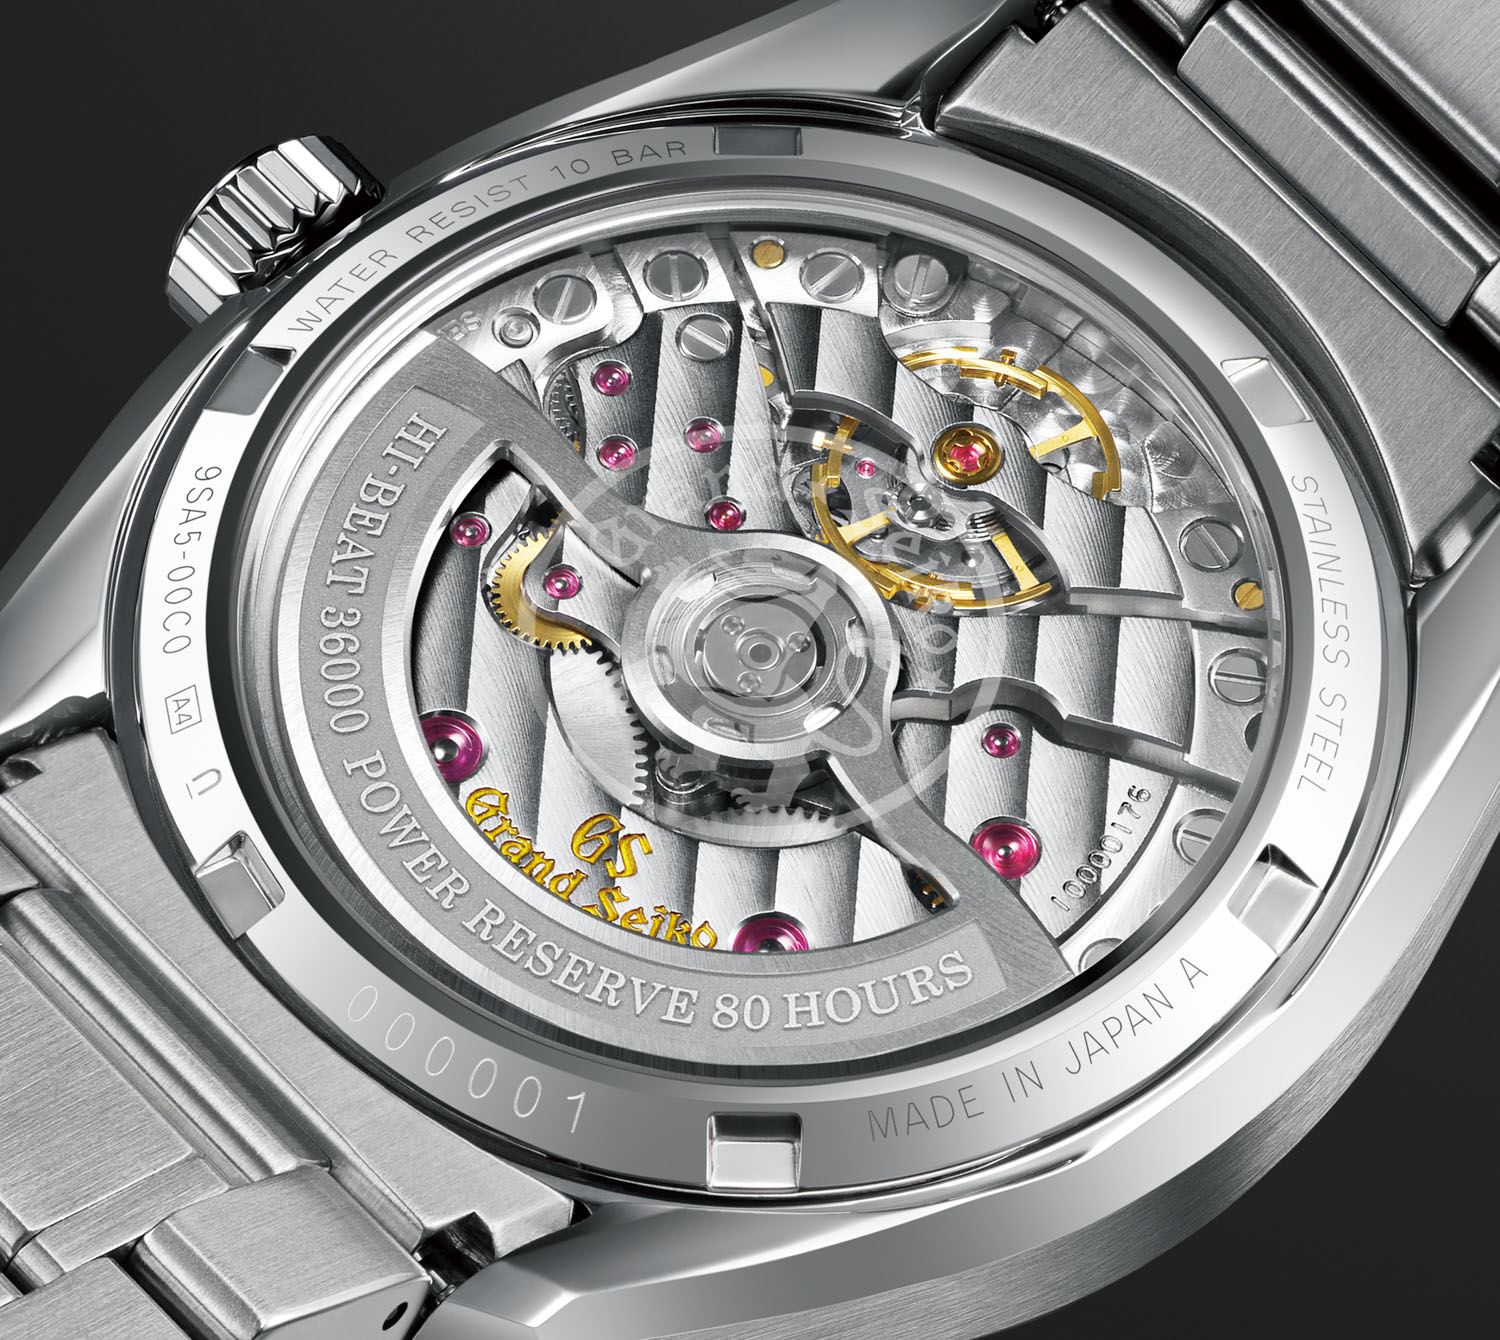 The Heritage Collection Series 9 SLGH005 is powered by the groundbreaking calibre 9SA5